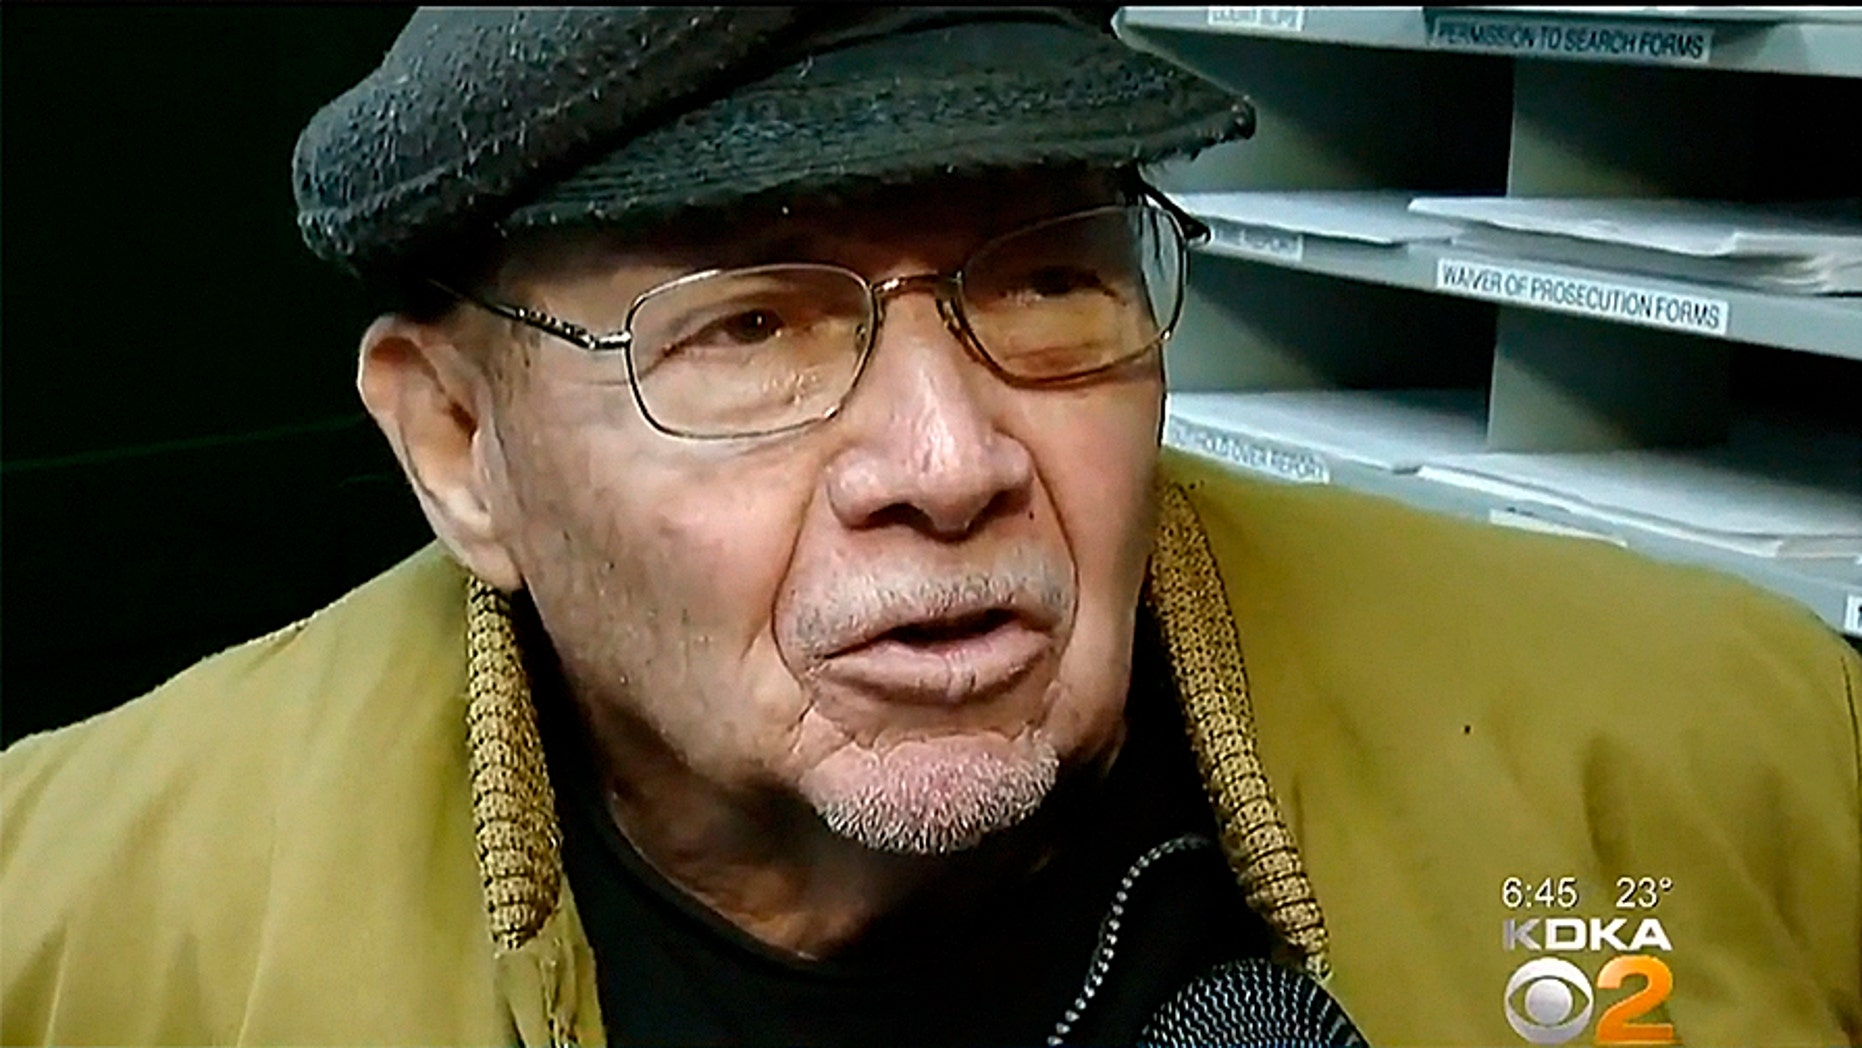 Don Lutz, 88, successfully fought off a home invasion in his Ellwood City home, killing one intruder.